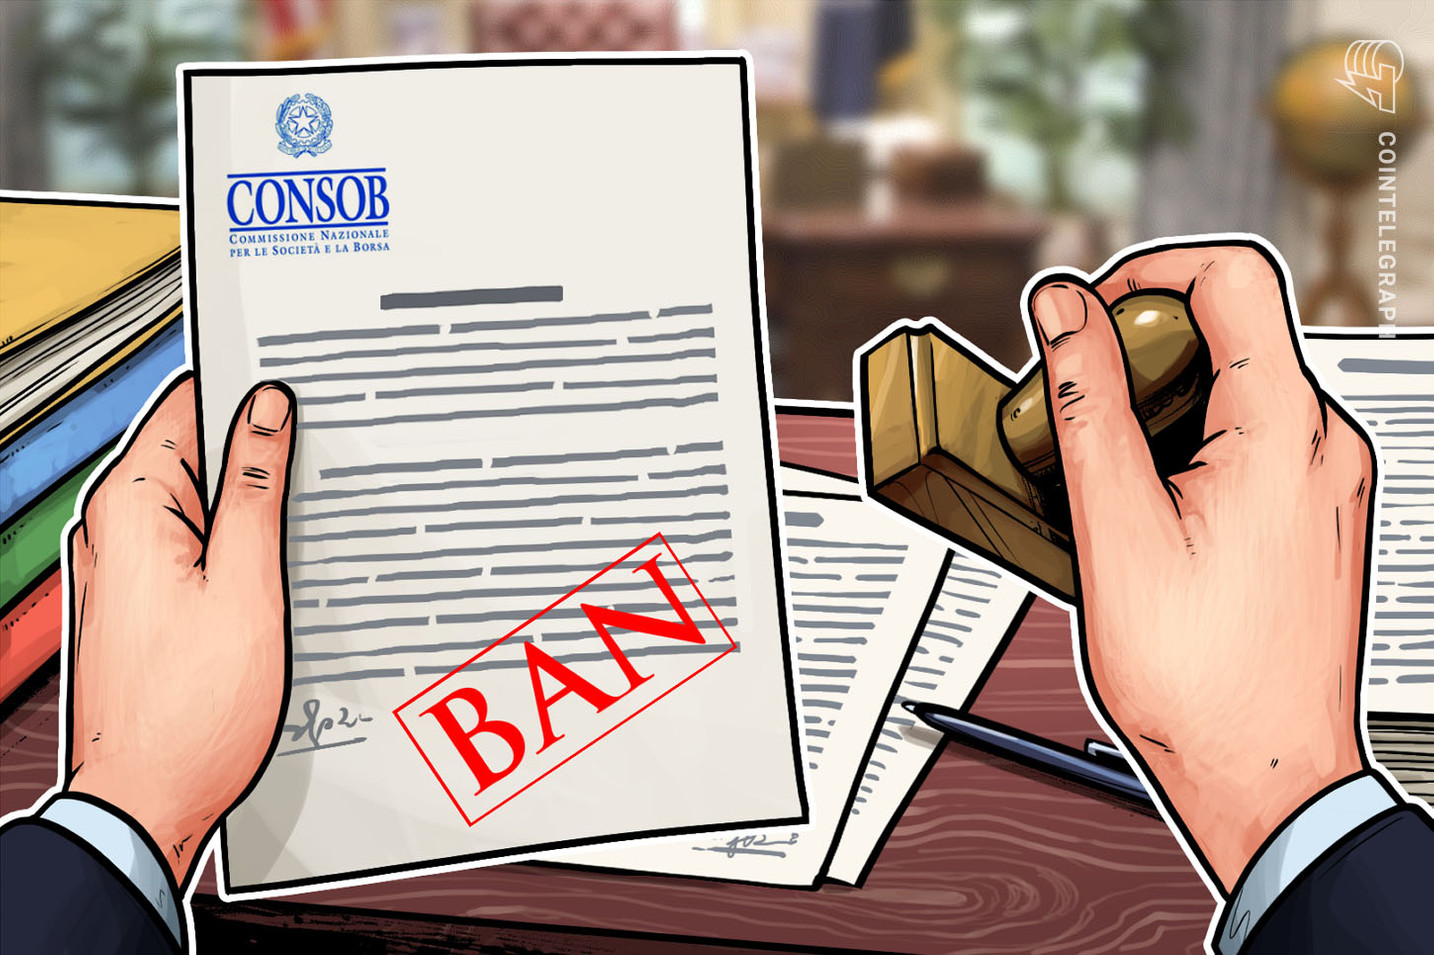 Italian Financial Regulator Issues Cease and Desist Order to Crypto-Related Project